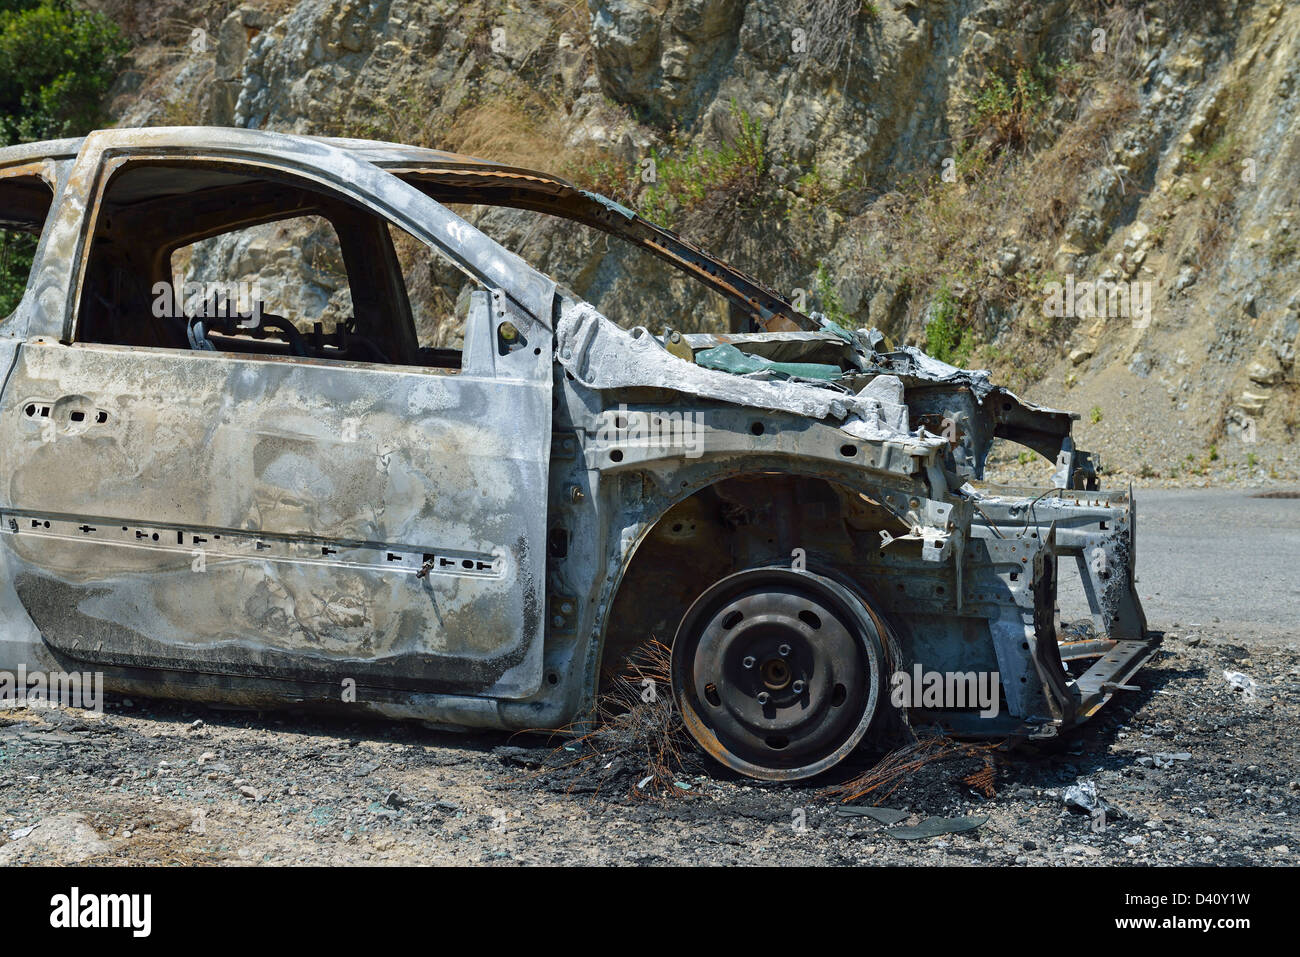 Abandoned burnt out car vehicle wreck - Stock Image